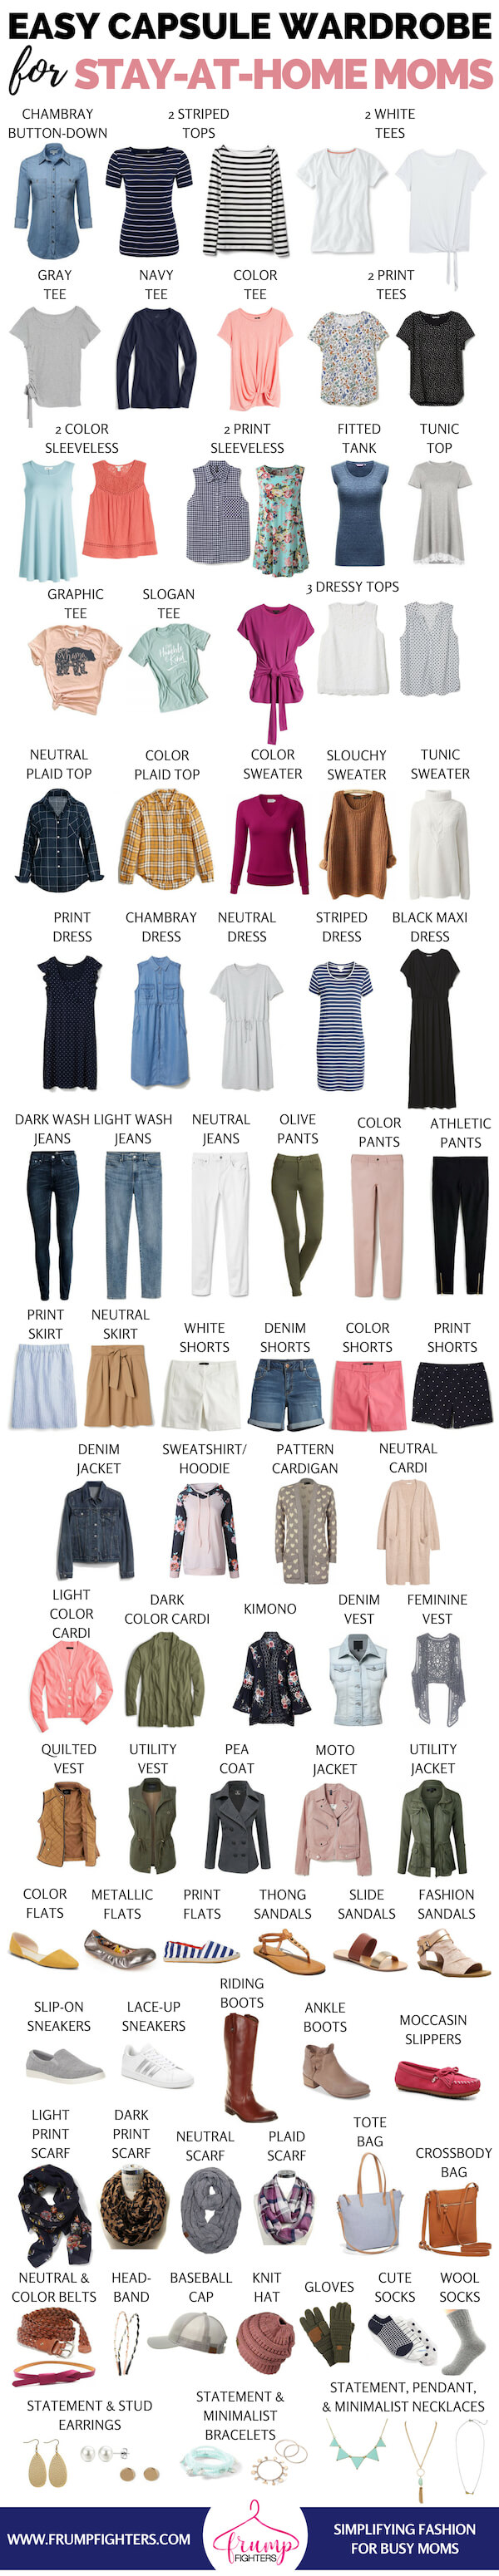 Free guide on how to build a #sahm #capsule wardrobe! The best clothes for on-the-go mom-friendly #style. The #free #printable checklist includes a wardrobe plan, step by step on how to put together a capsule, shopping checklist, & outfits. List of #mom #wardrobe essentials for a #fall capsule #wardrobe that transitions to #winter, #spring & #summer seamlessly! Love this casual but stylish capsule for stay at home moms, #homeschool, & work at home moms! #outfits#backtoschool